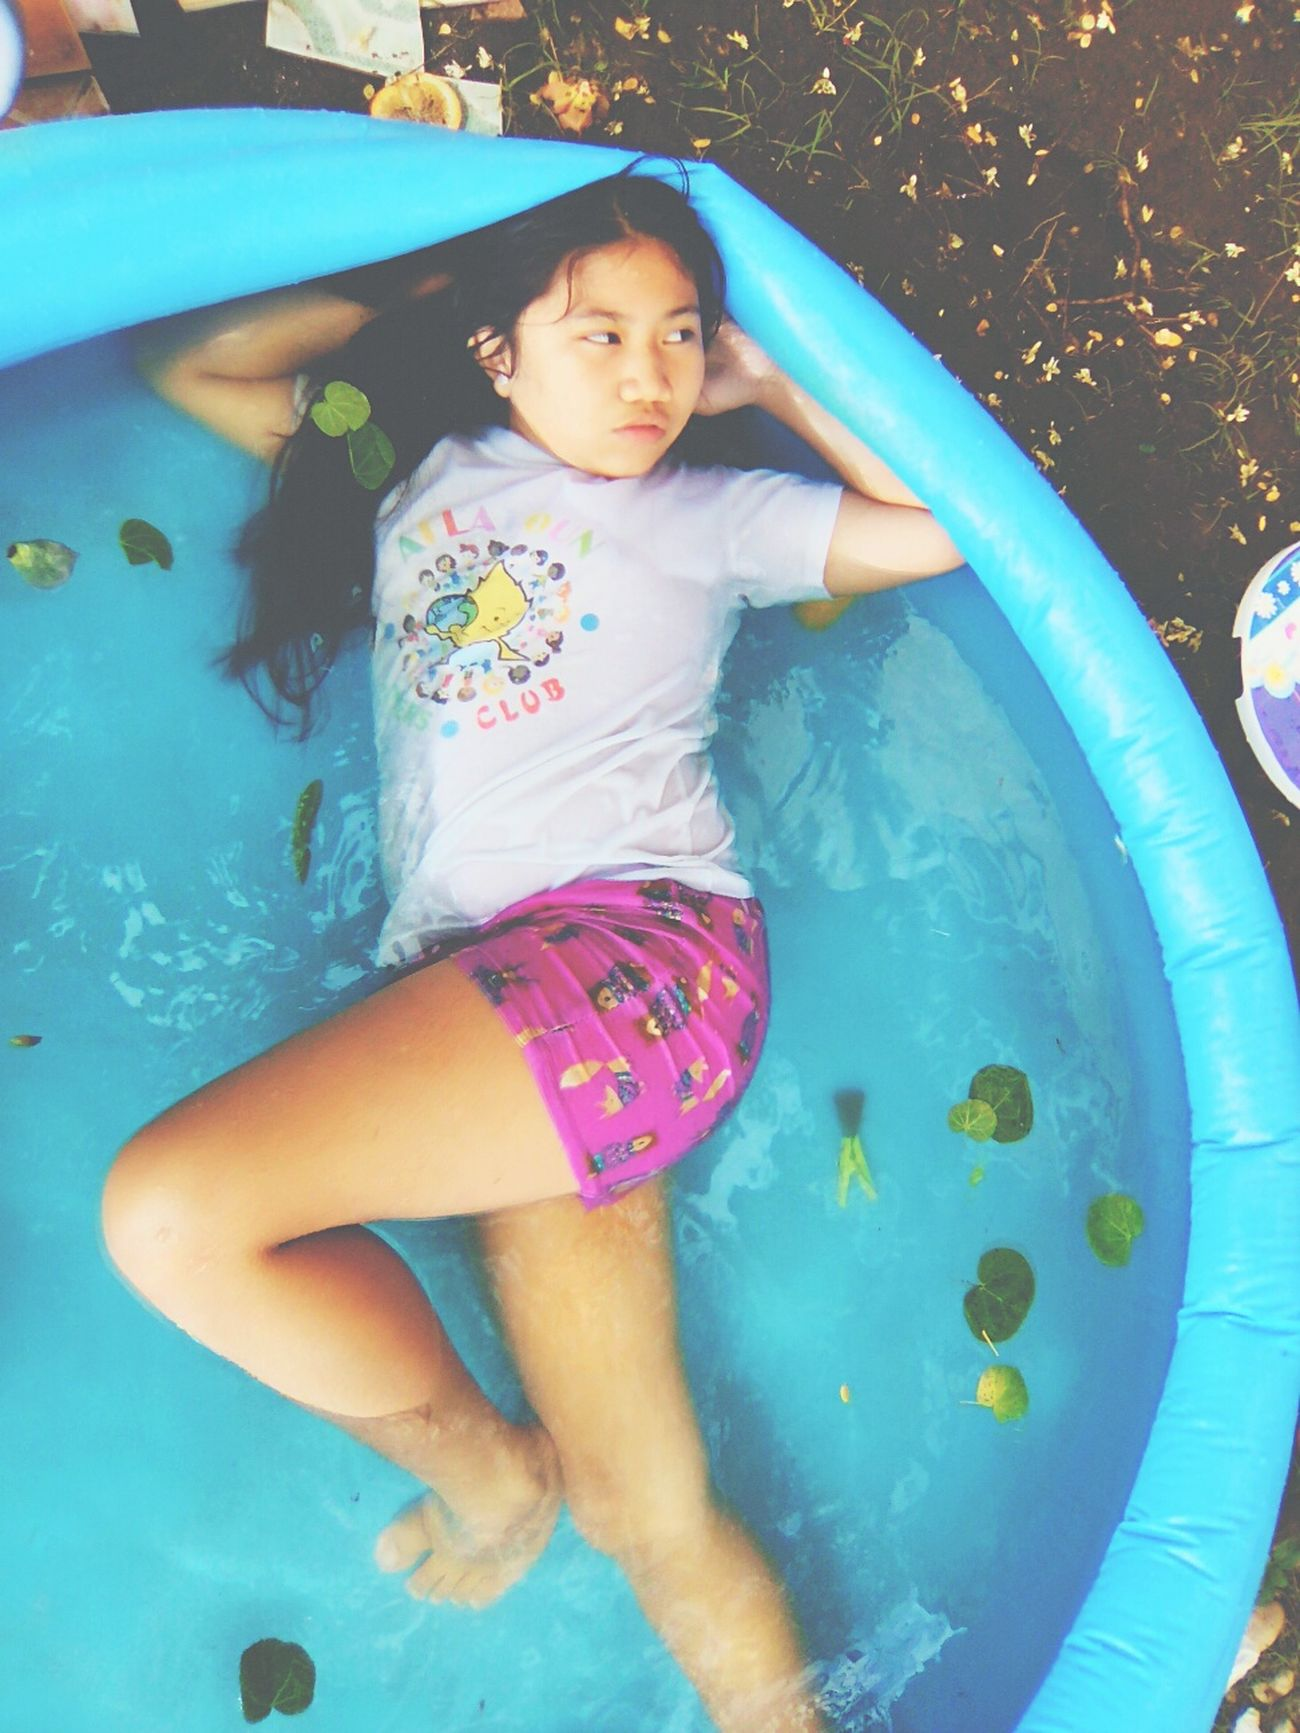 Coz we're bored at the pool Water Swimming Inflatable Pool Babes Baby Niece  Swim Model Pose Modeling Model Photography Modelgirl Pose Outdoors Summer Wet